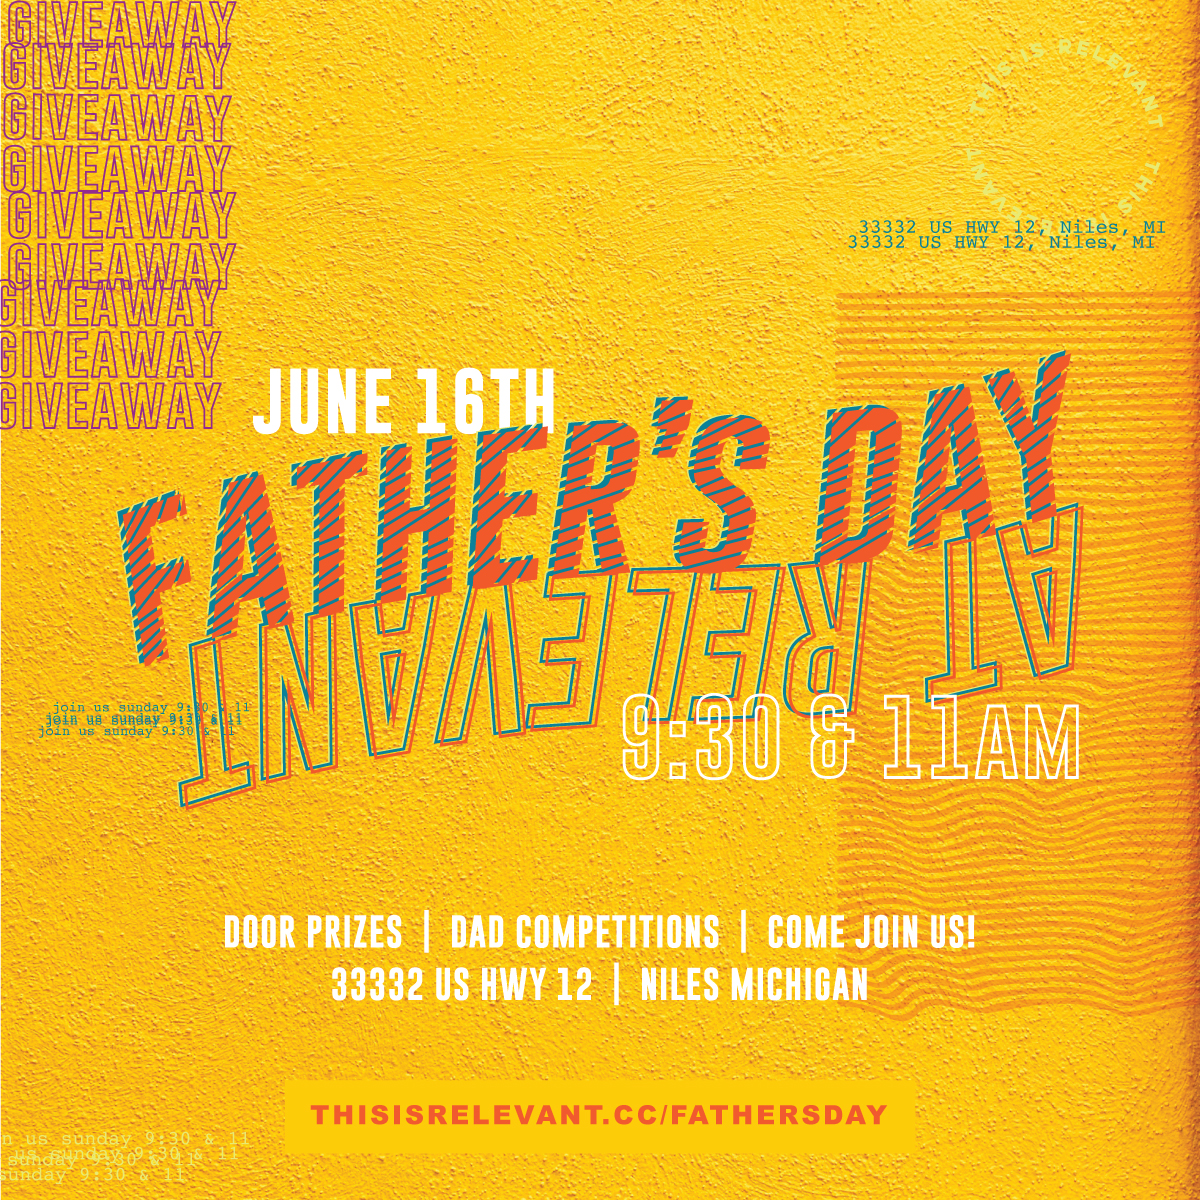 Fathers-Day_social-media-square.jpg